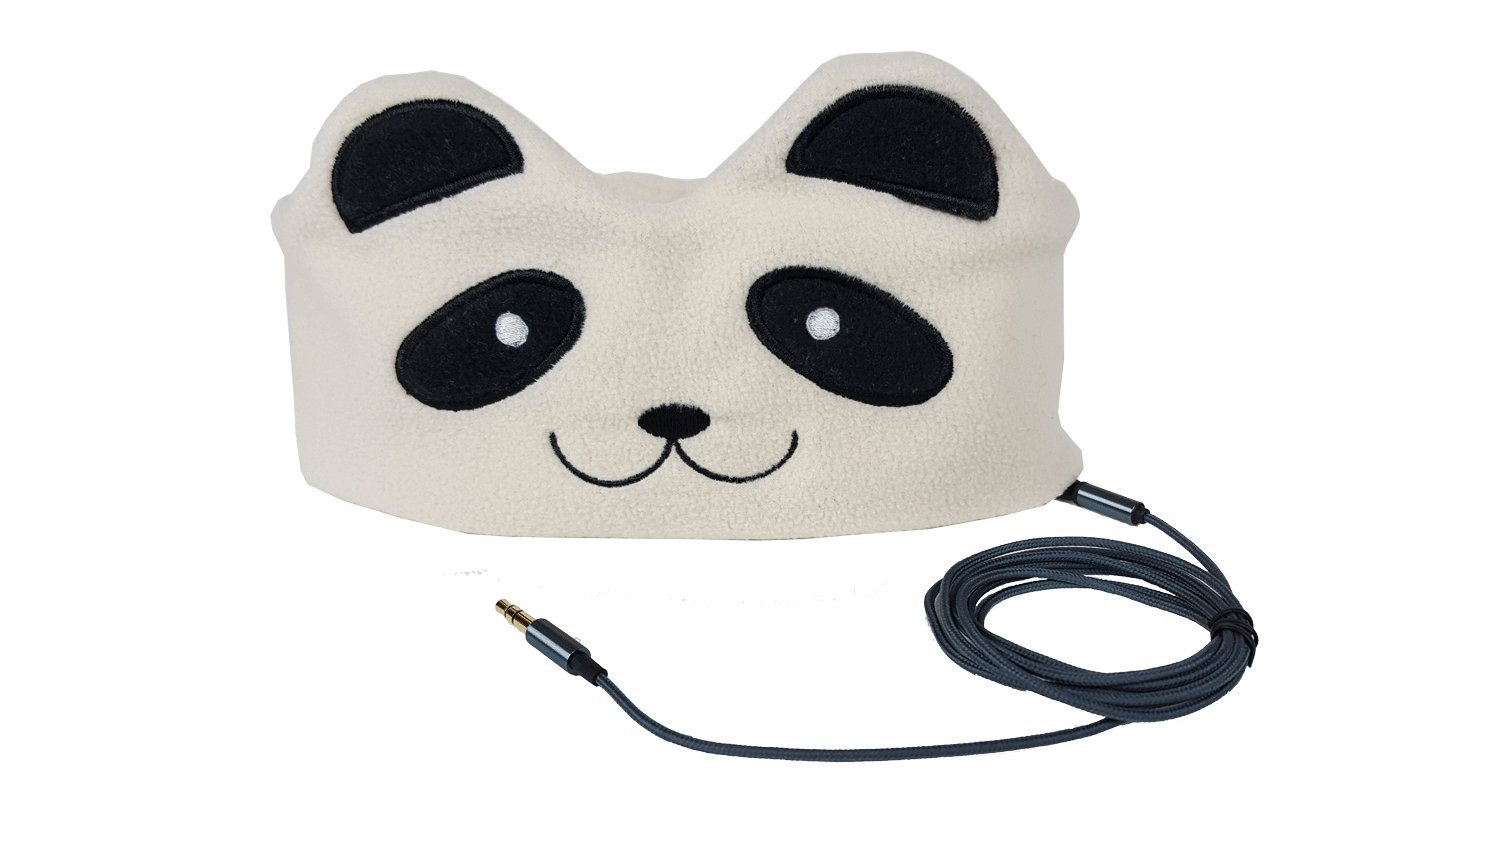 Cute sleeping children loved hat headphones